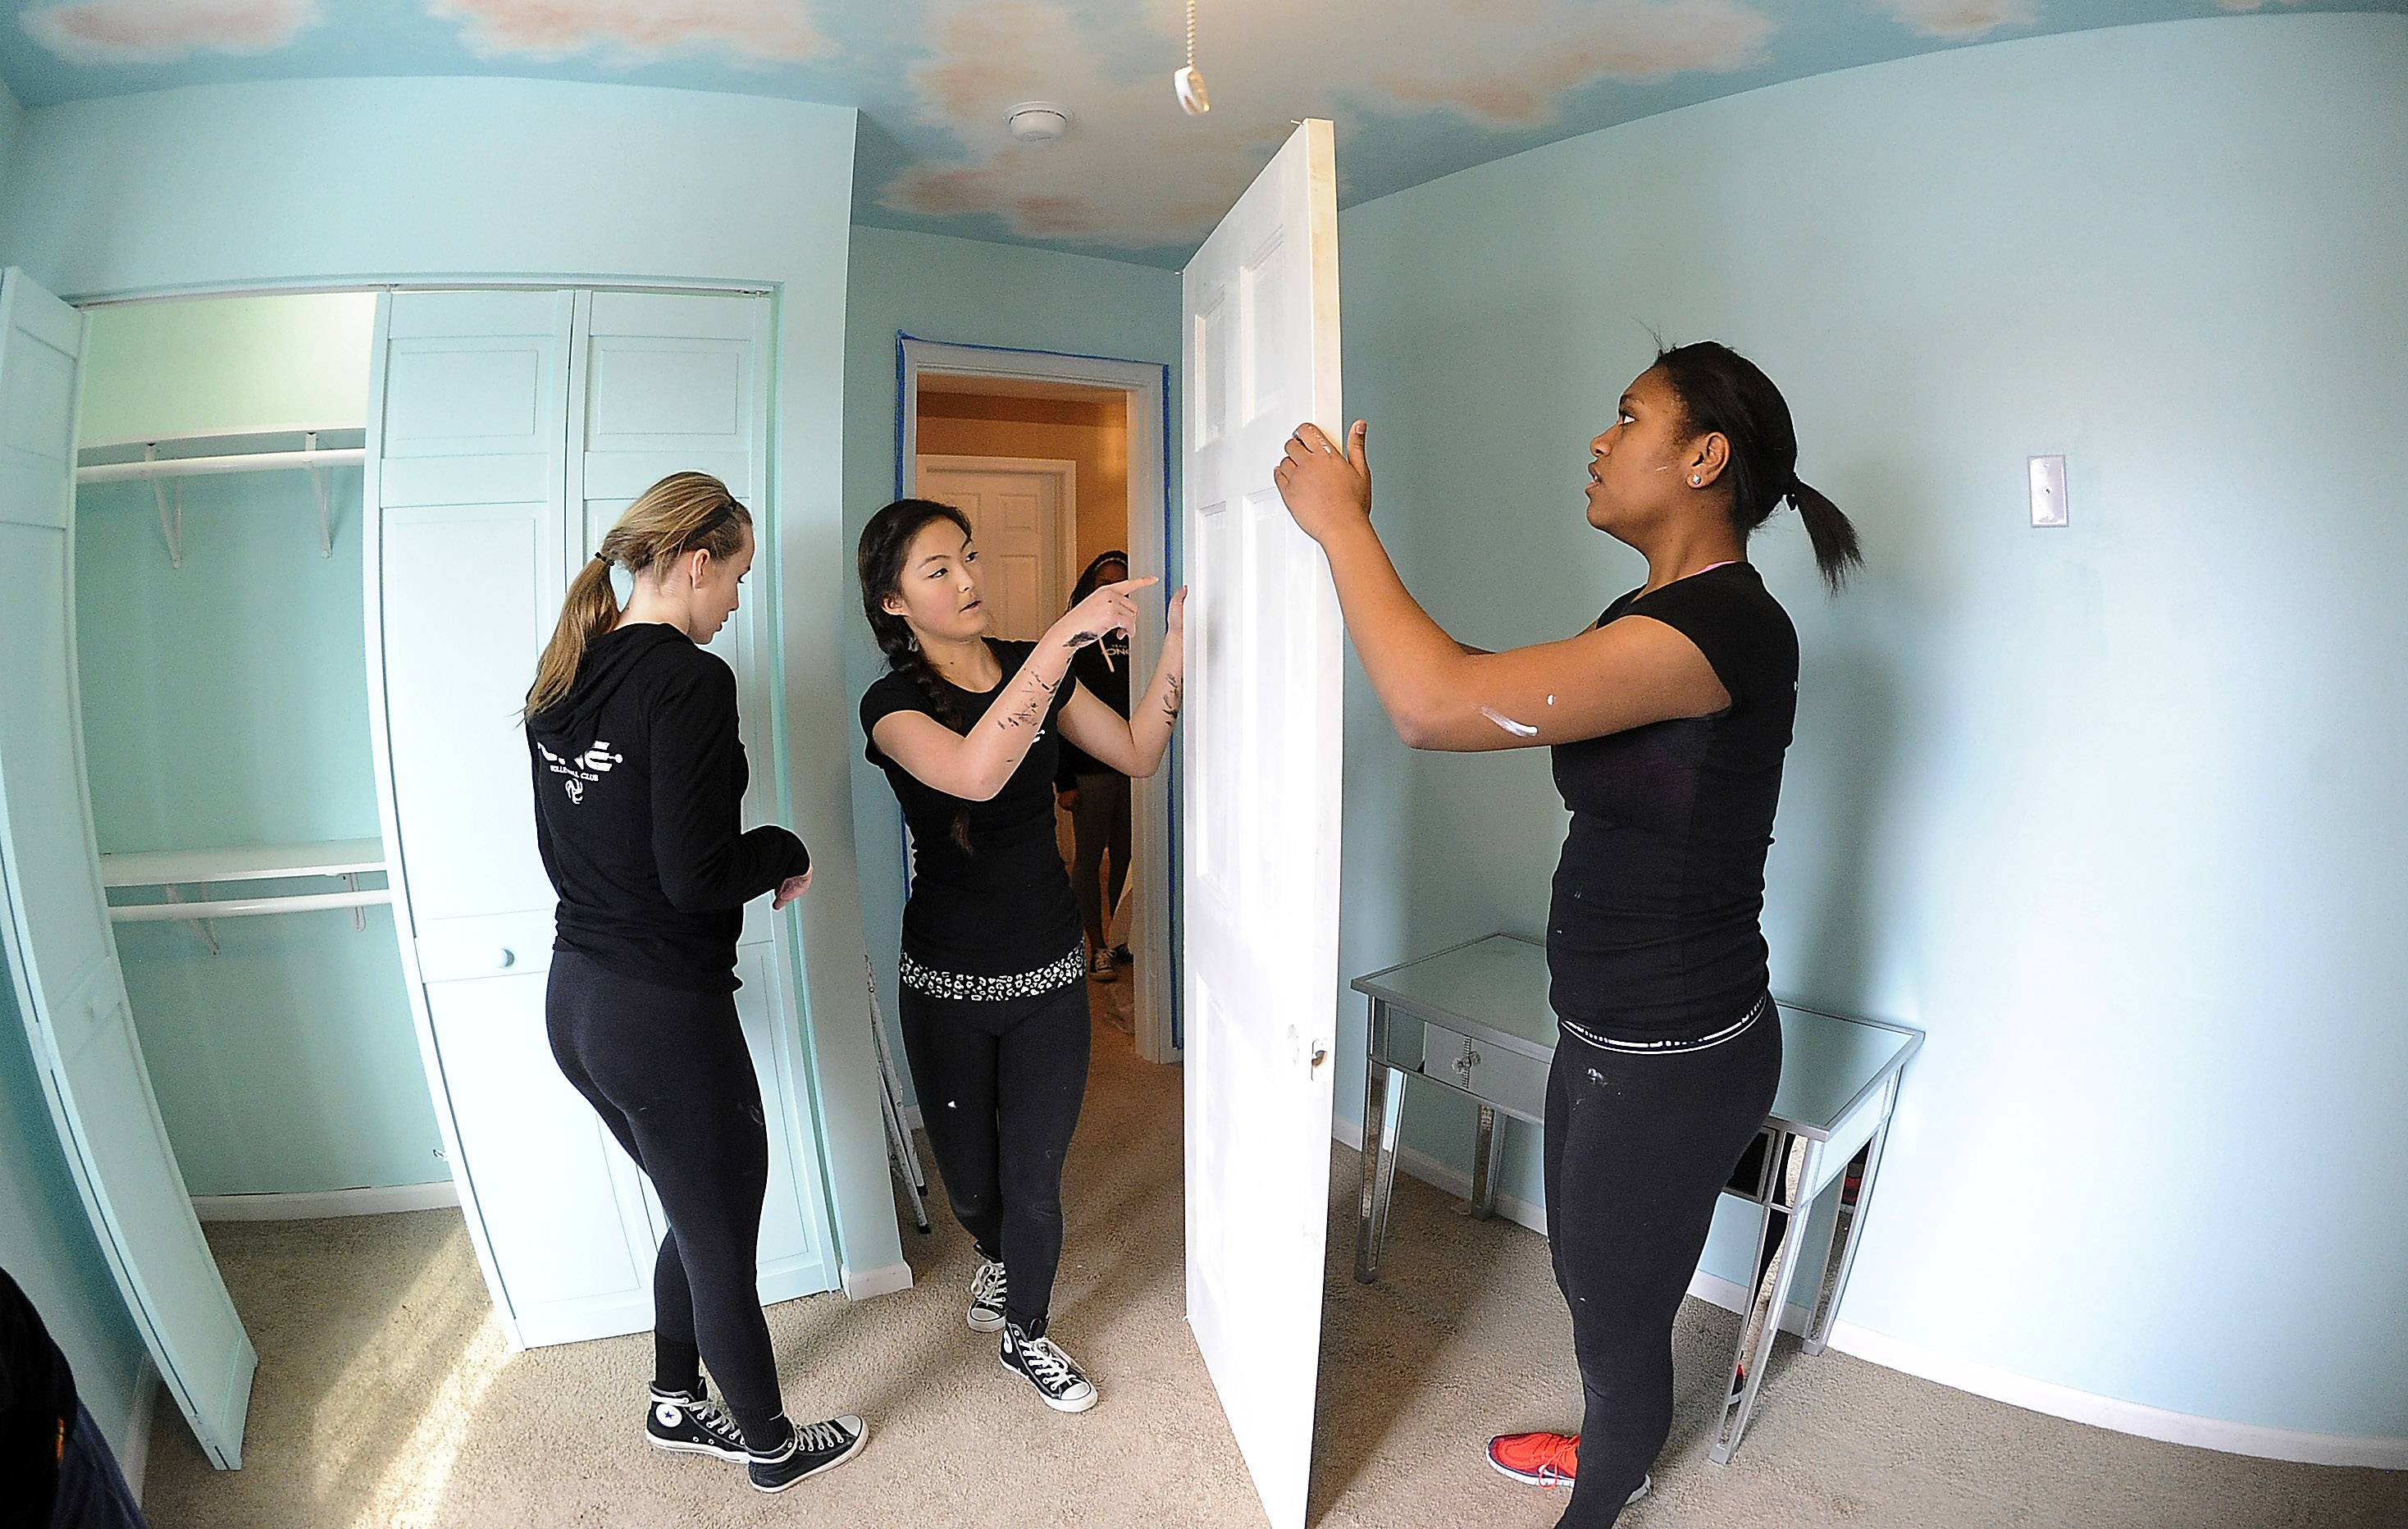 Asia Green (right) from Plainfield and her fellow teammates of 16 Jade Team One volleyball club in Aurora Cerina Myong of Naperville (middle) and Sarah Pliml of Naperville work on the freshly painted door that is part of the makeover for a Bartlett 10 year-old girl with a life-threating medical condition.